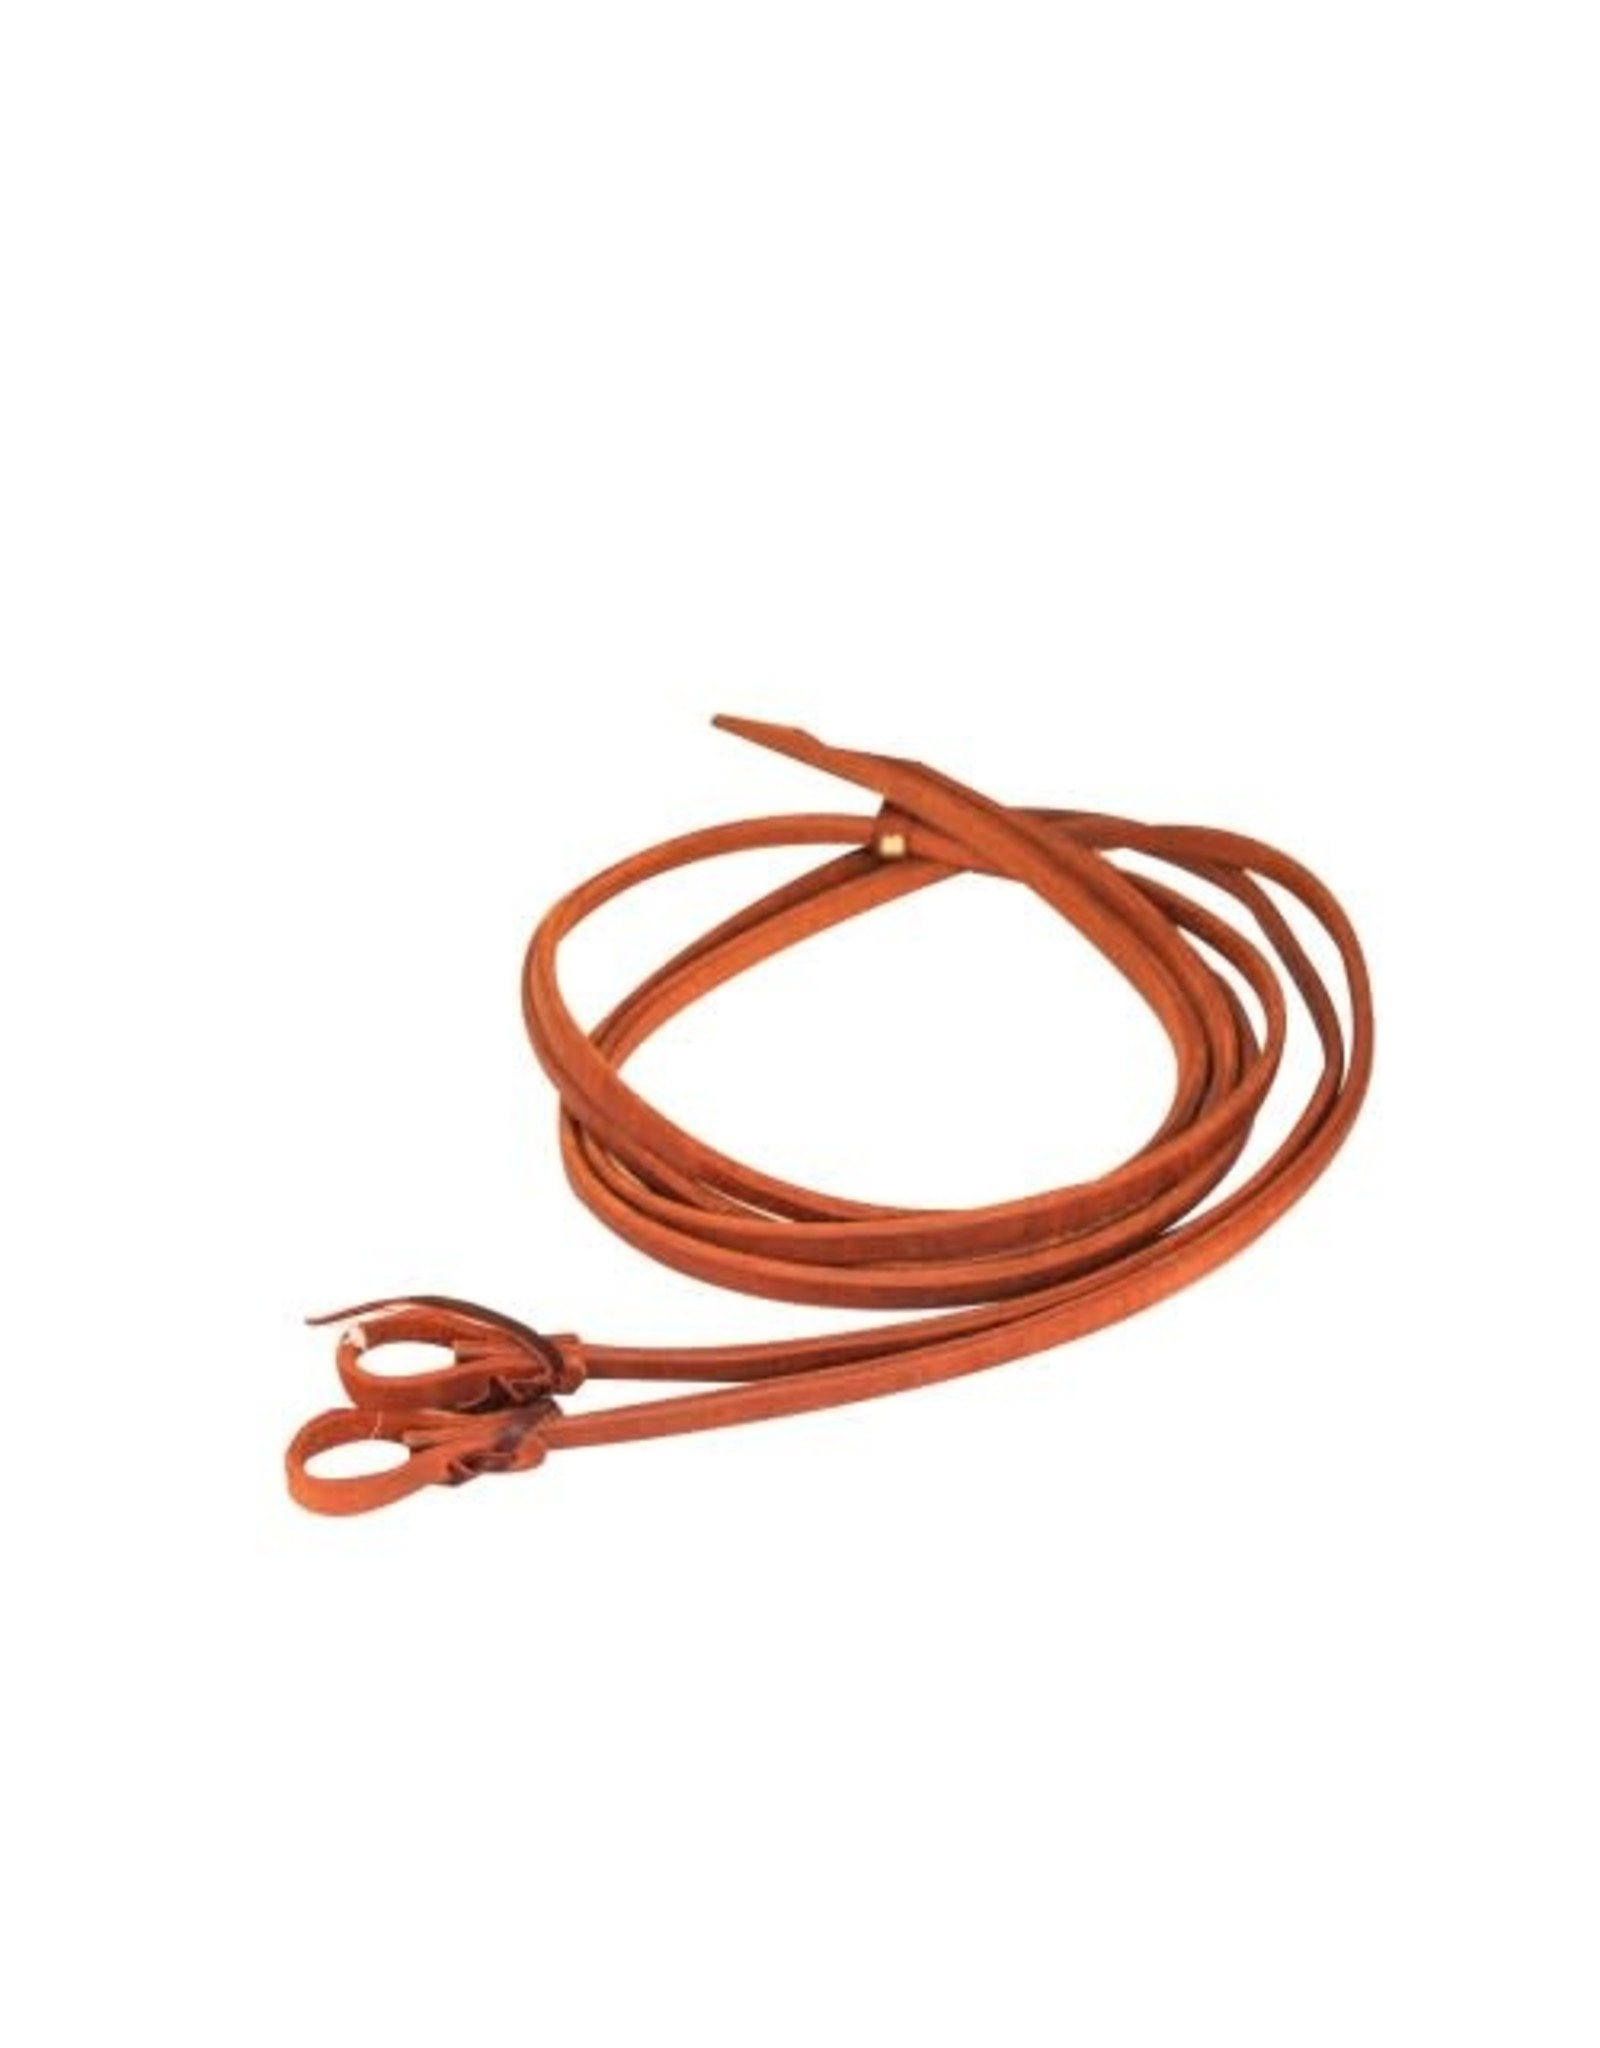 1/2' Oiled Harness Leather Rein with Heavy End - #212878-57